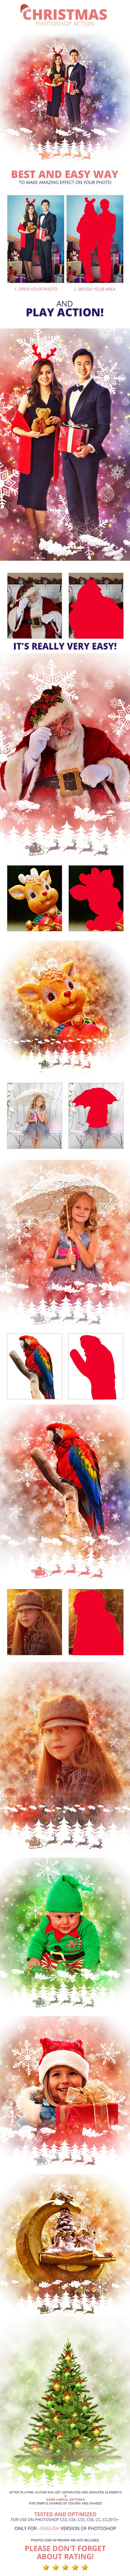 Christmas photoshop action photoshop action and photoshop ideas christmas photoshop action festive christmas and new year photoshop action make your photo like a greeting card with professional backgrounds baditri Gallery